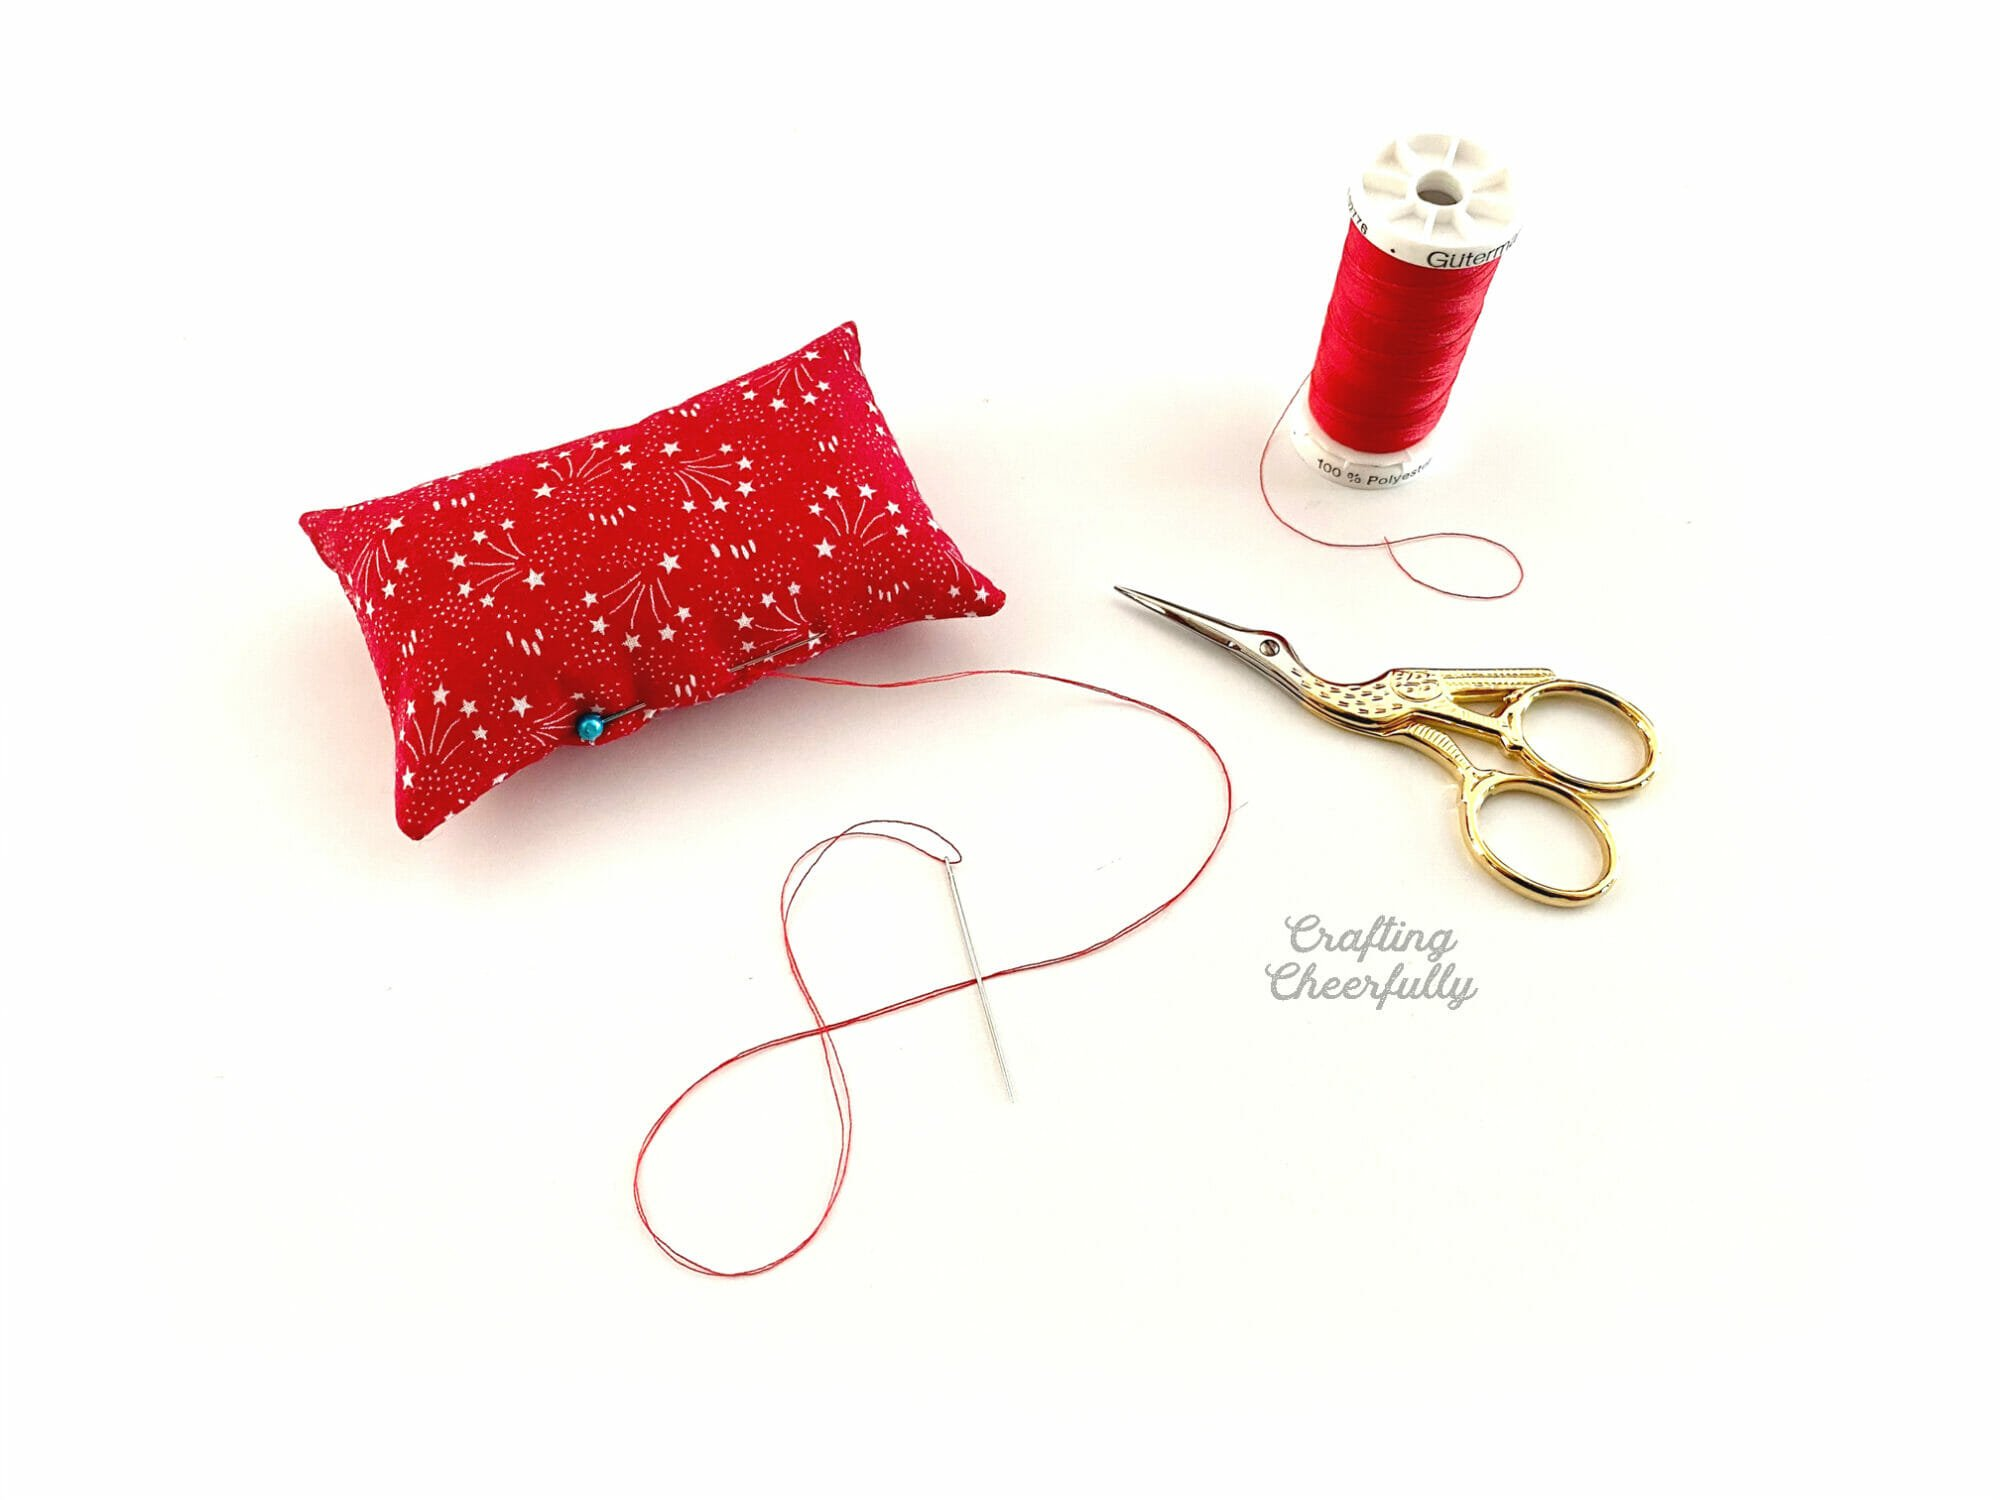 Red pillow with a pink in it laying next to a red spool of thread and stork scissors.